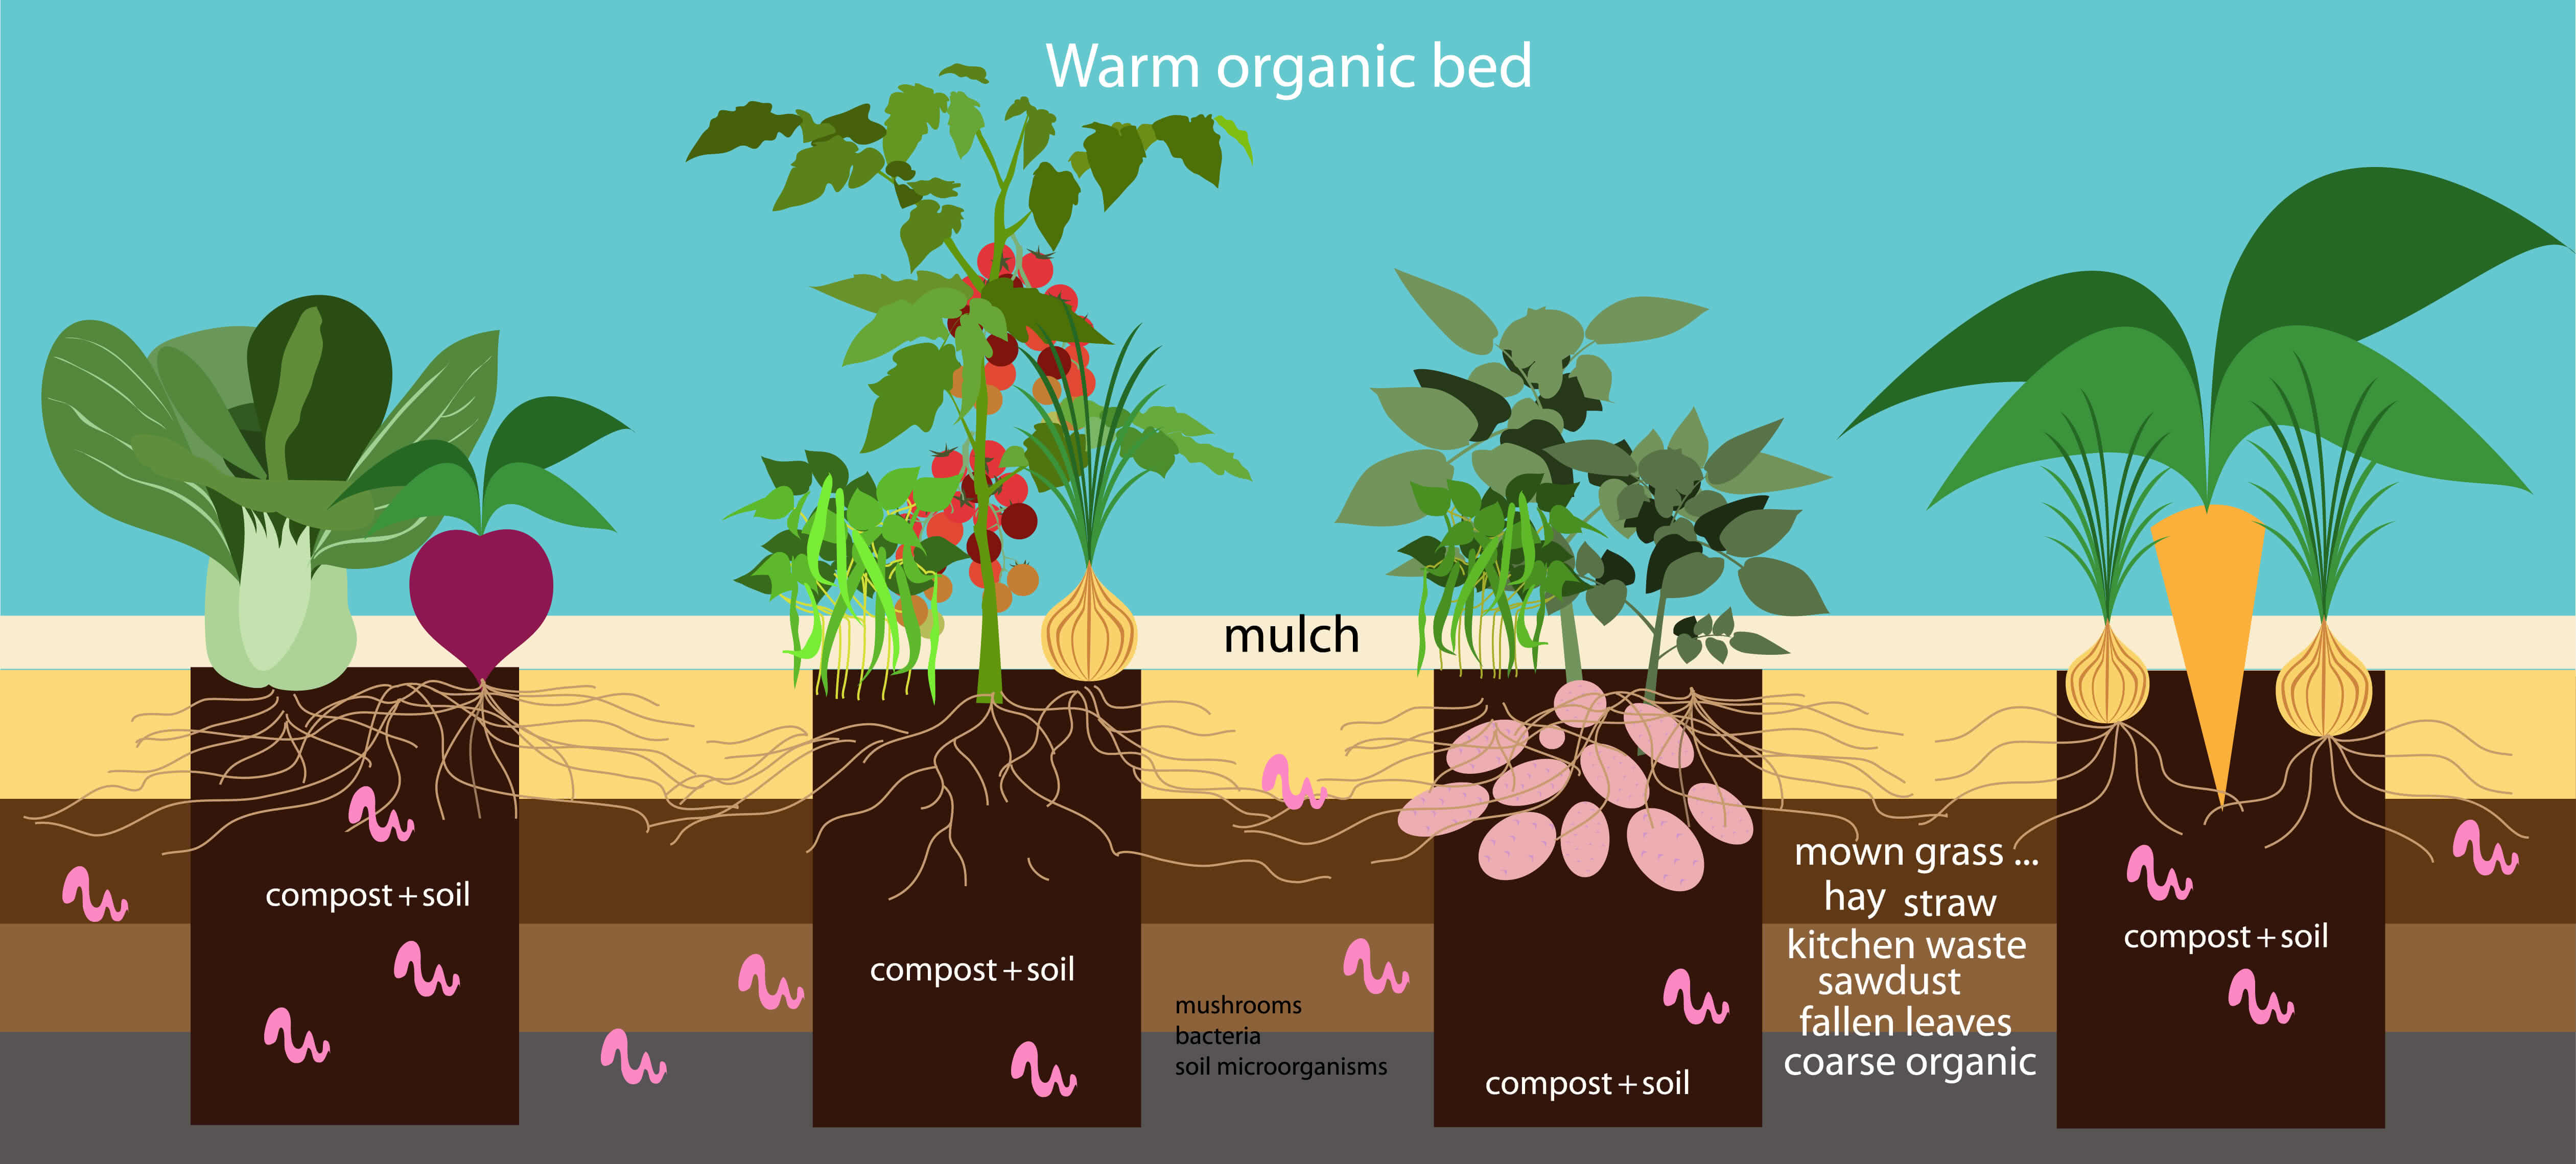 worm composting in vegetables